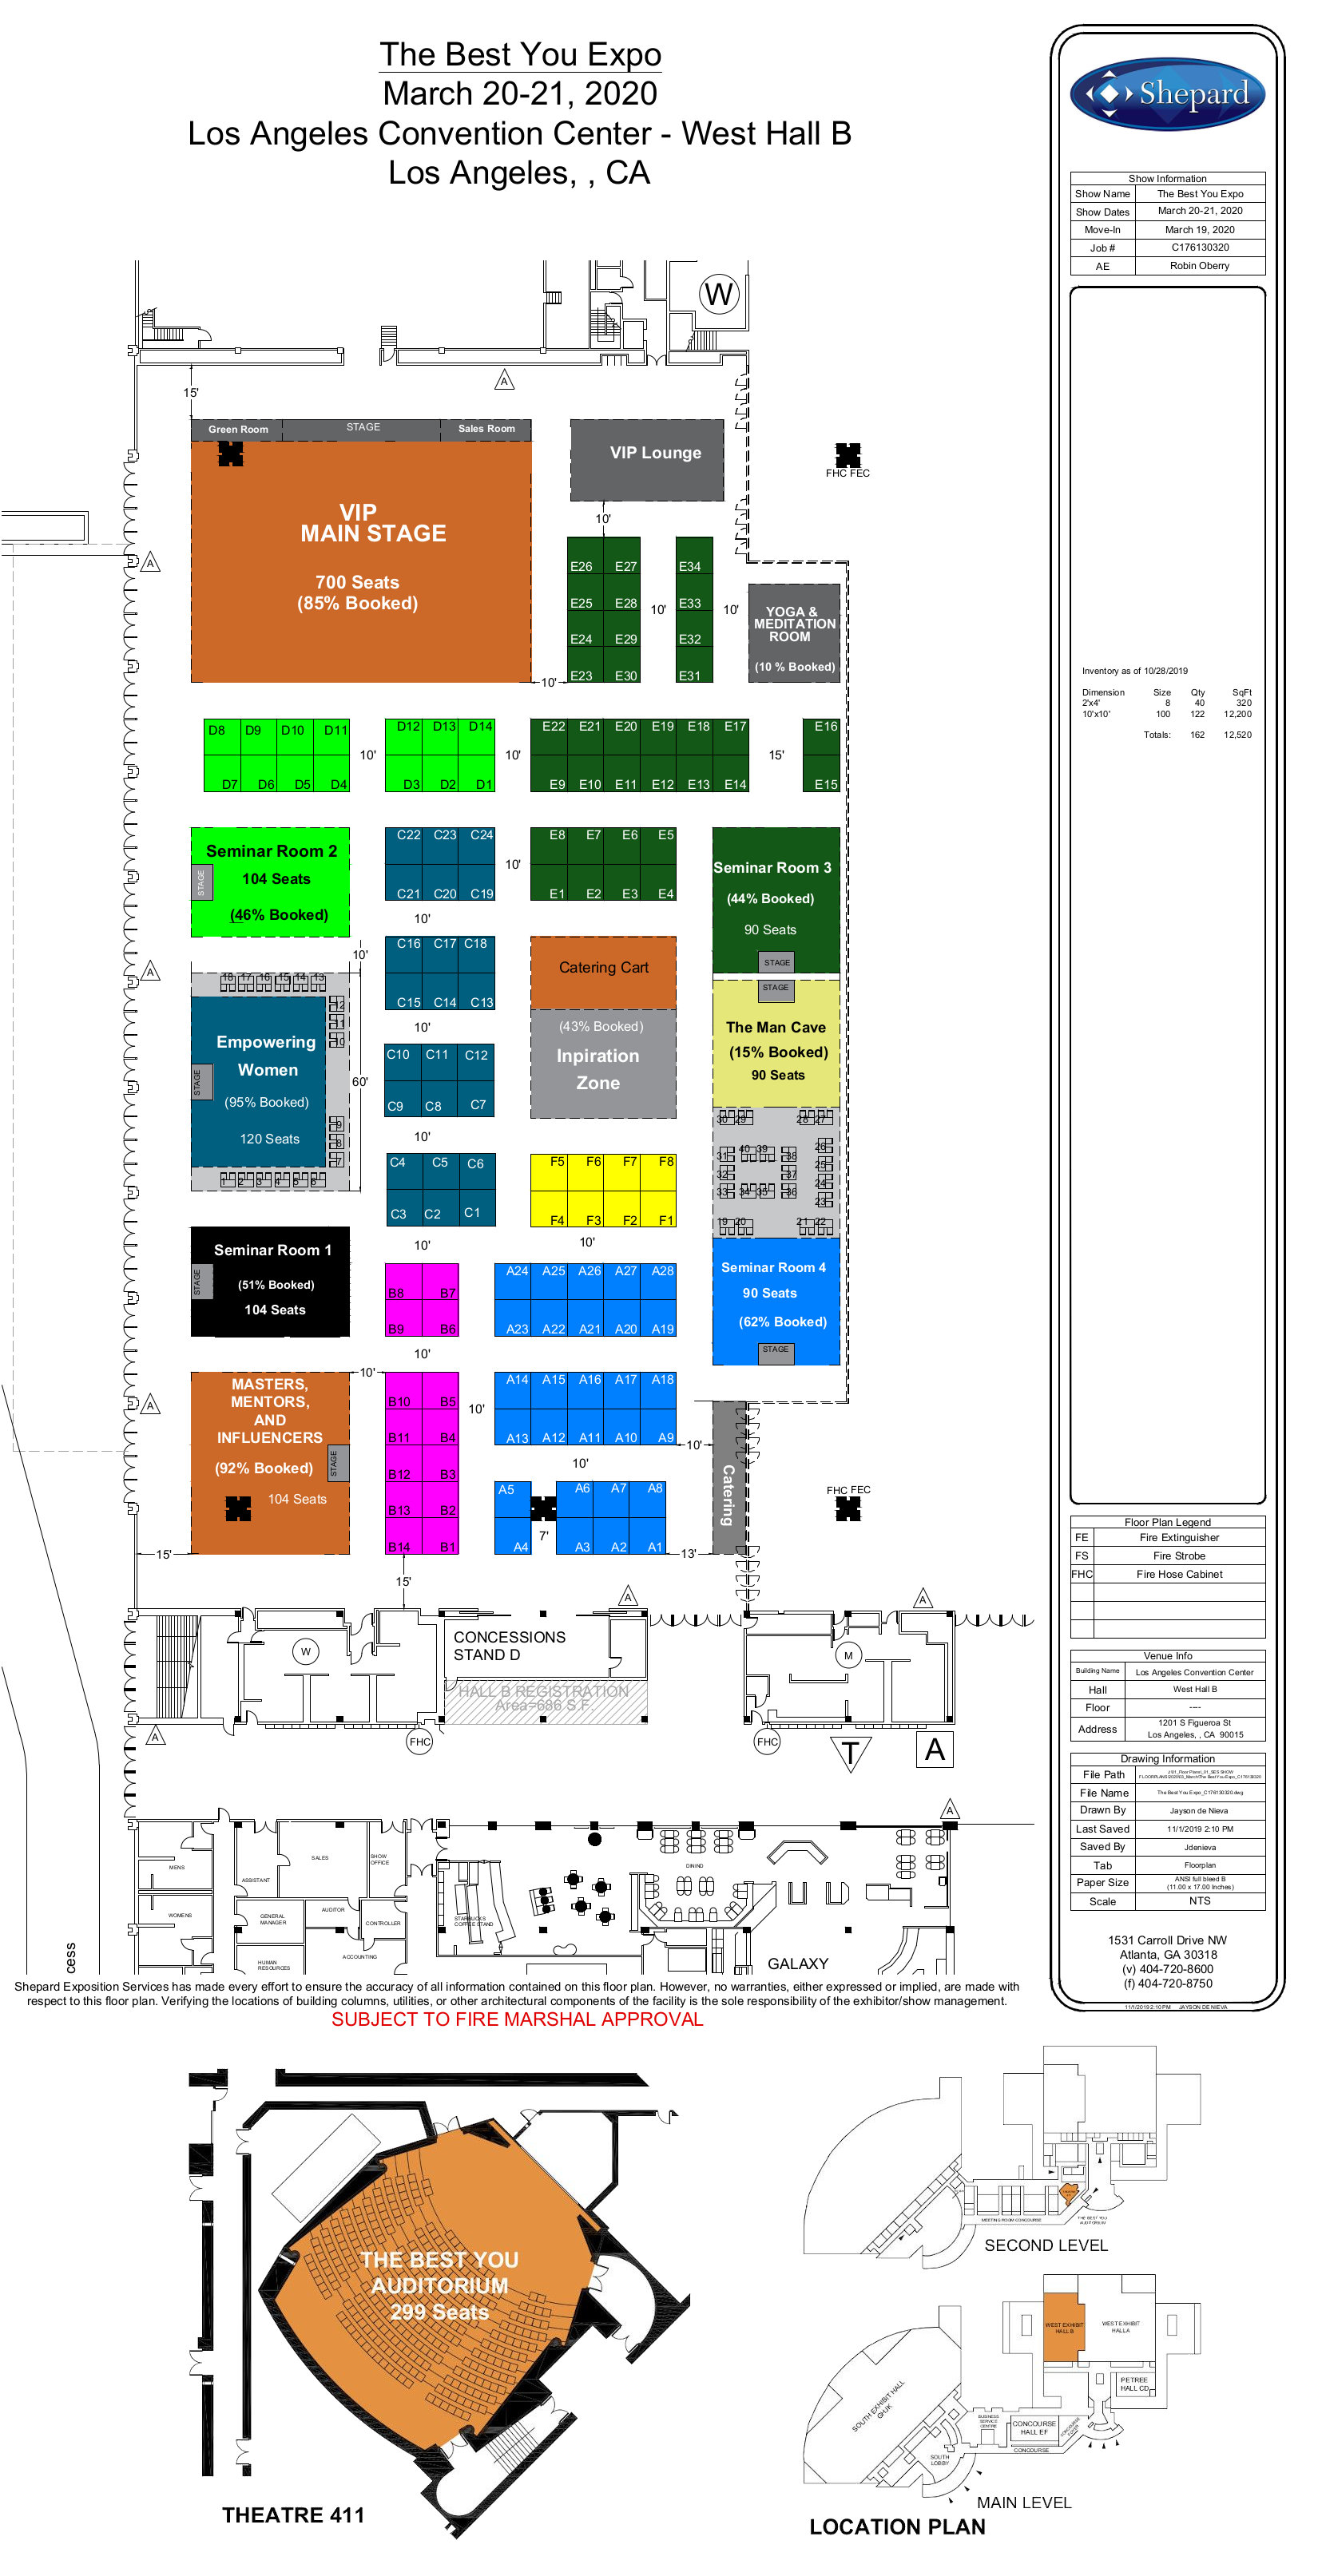 https://thebestyouexpo.com/us/wp-content/uploads/2019/11/Floorplan-Draft-TBY-11.11.19_ver_2.jpg